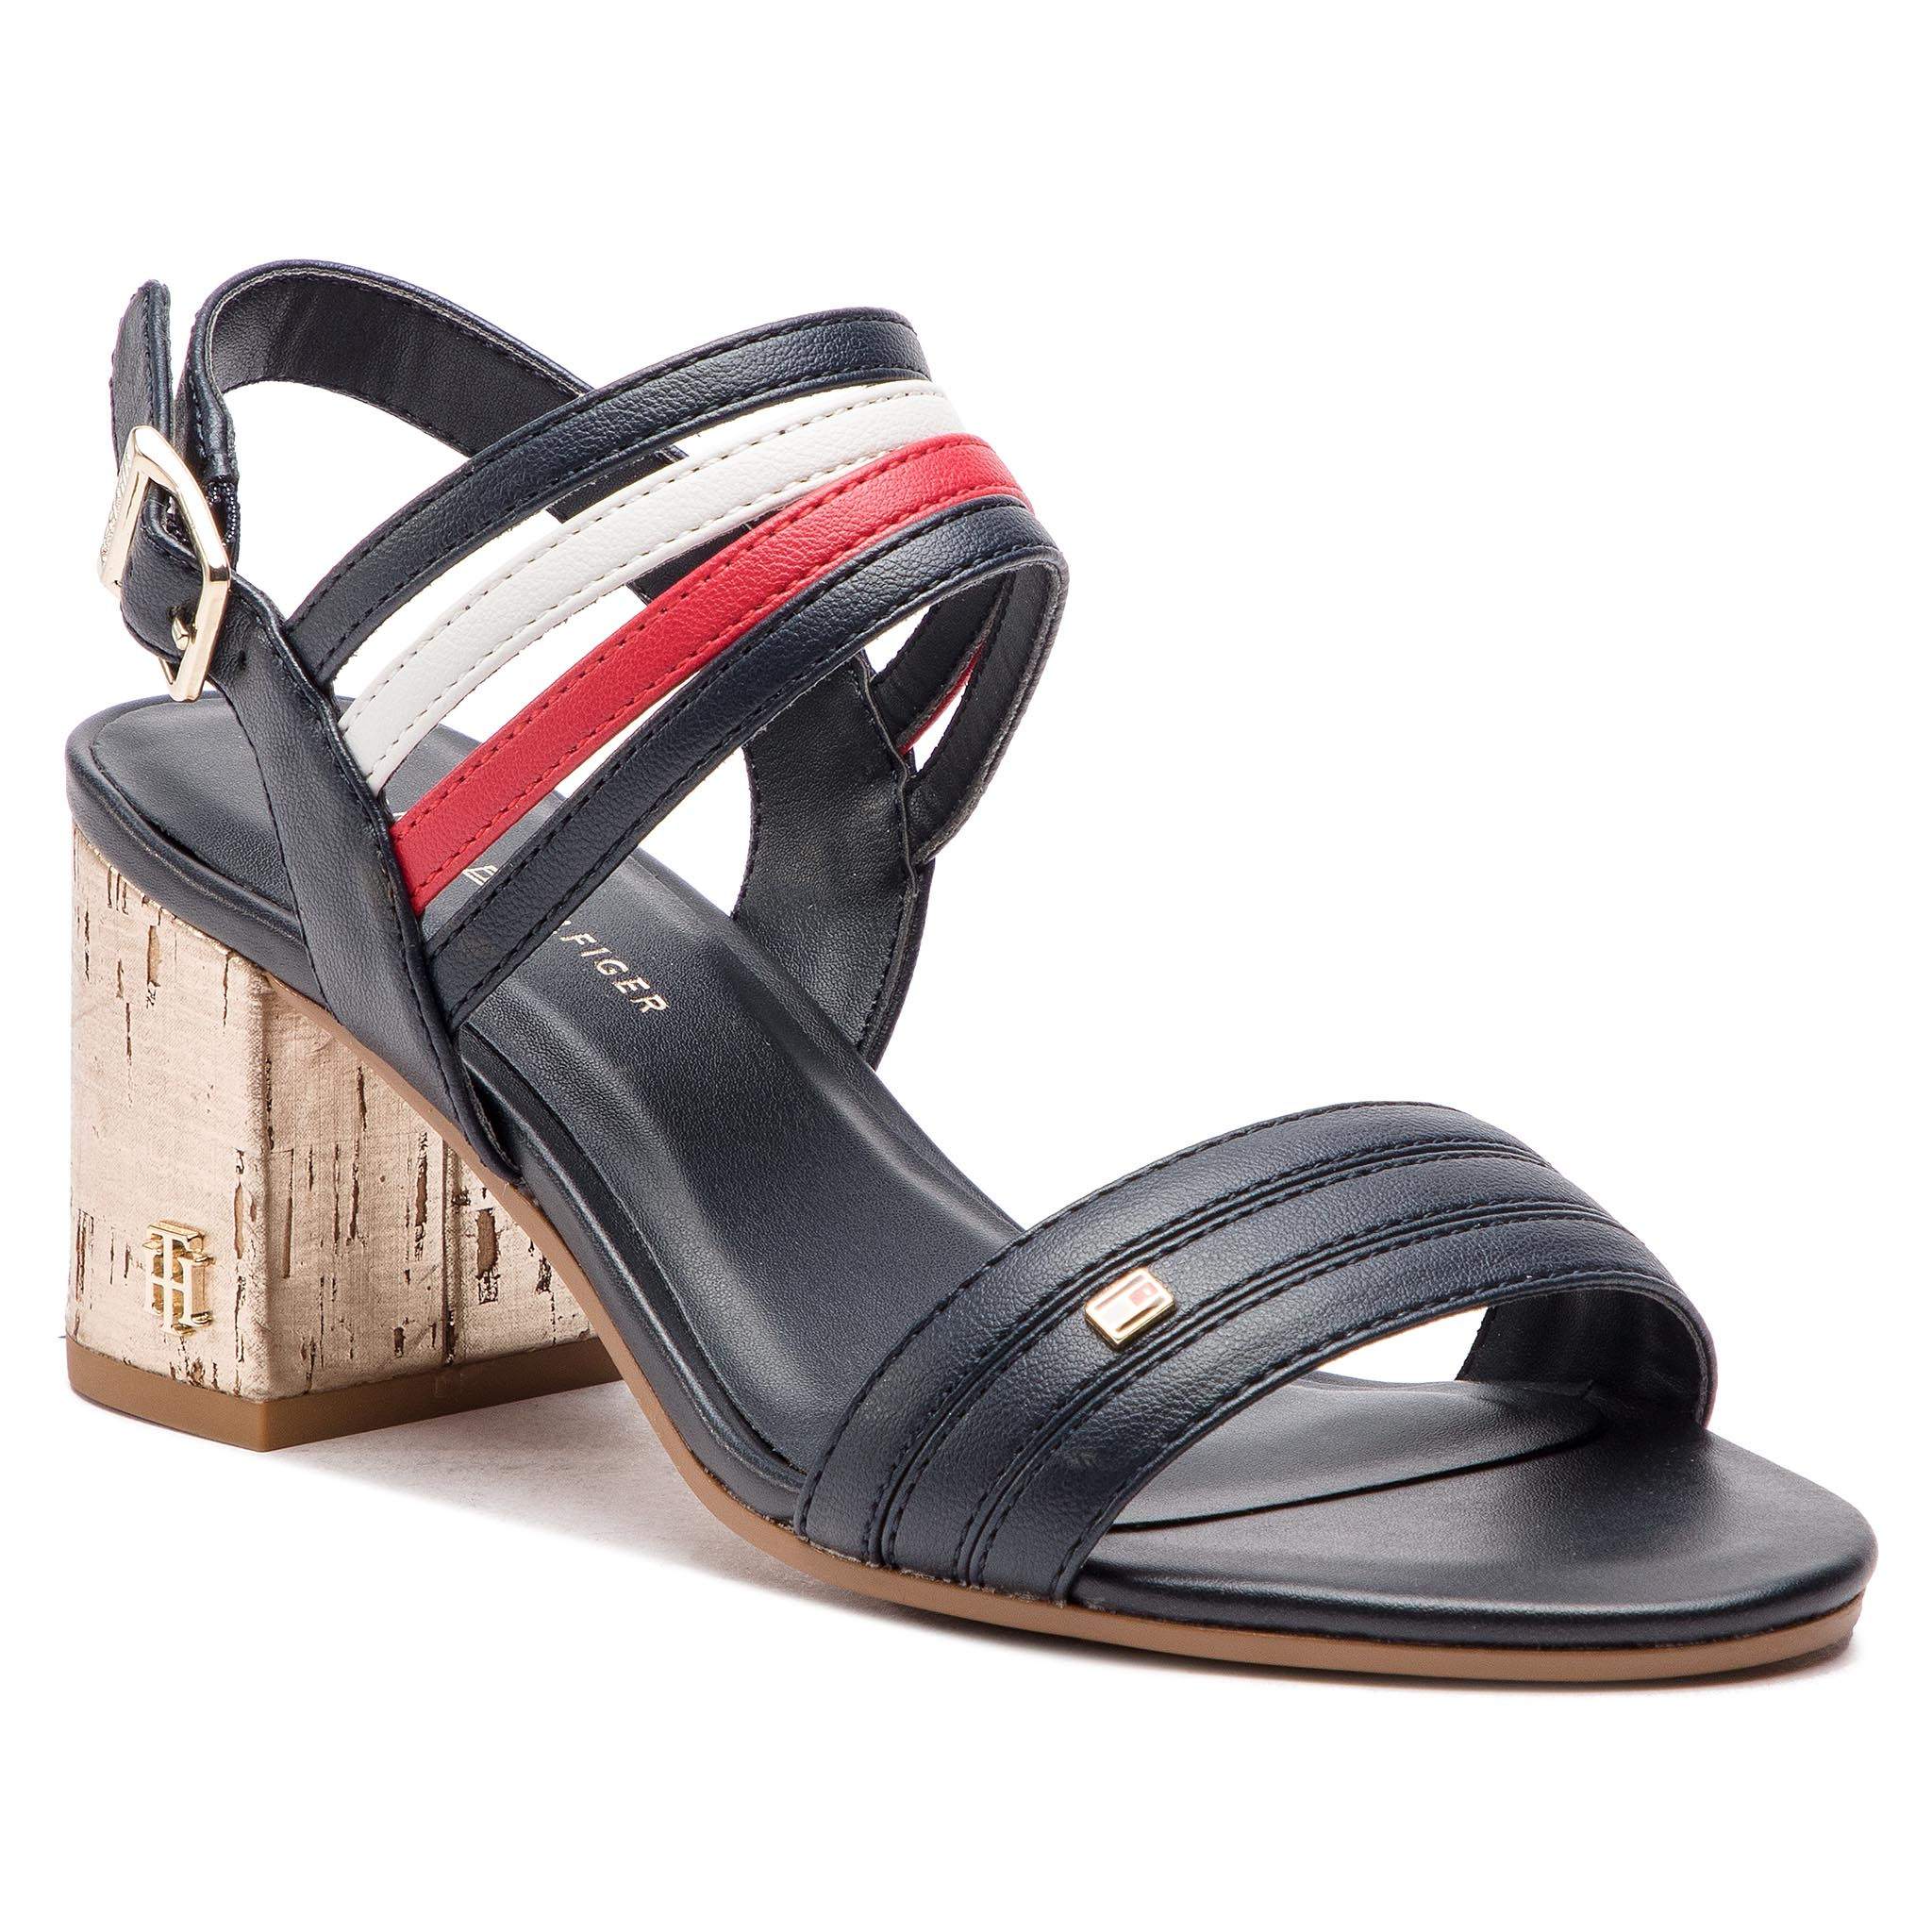 75f536f781a4 Sandale TOMMY HILFIGER - Corporate Wedge Sandal Sporty FW0FW02396 ...